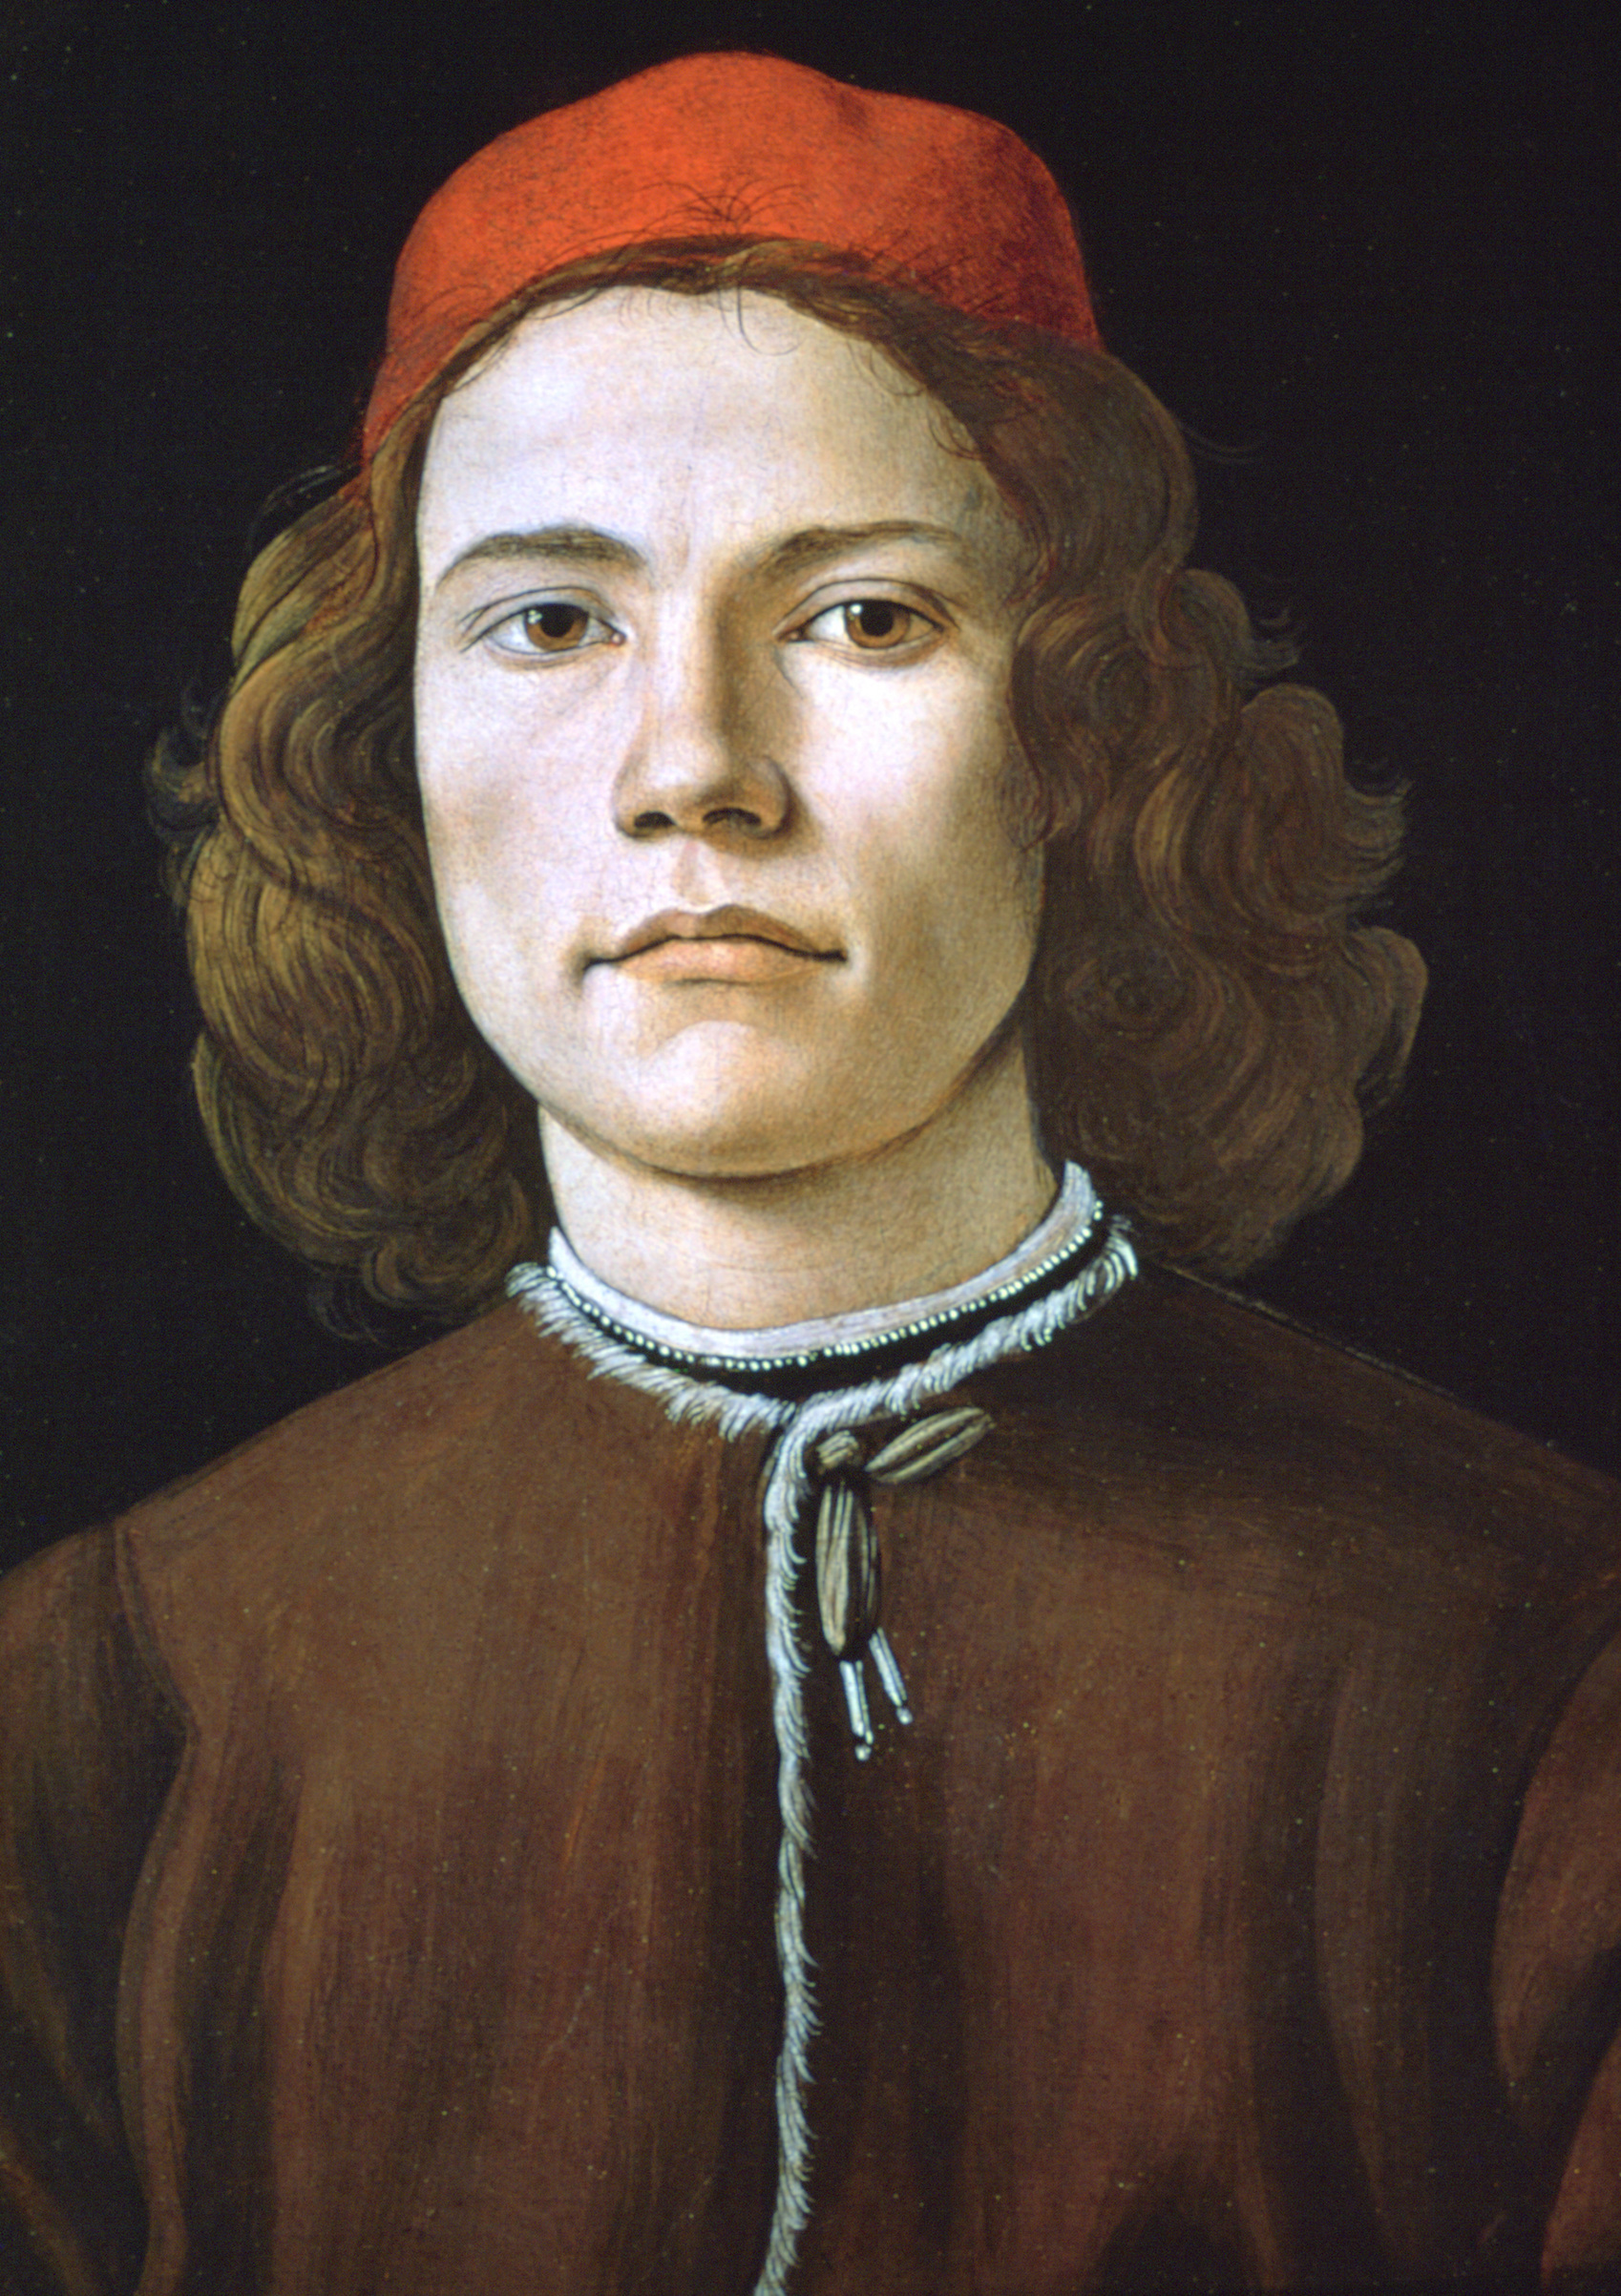 'Portrait of a Young Man', c1480-1485. From the collection of the National Gallery, London.